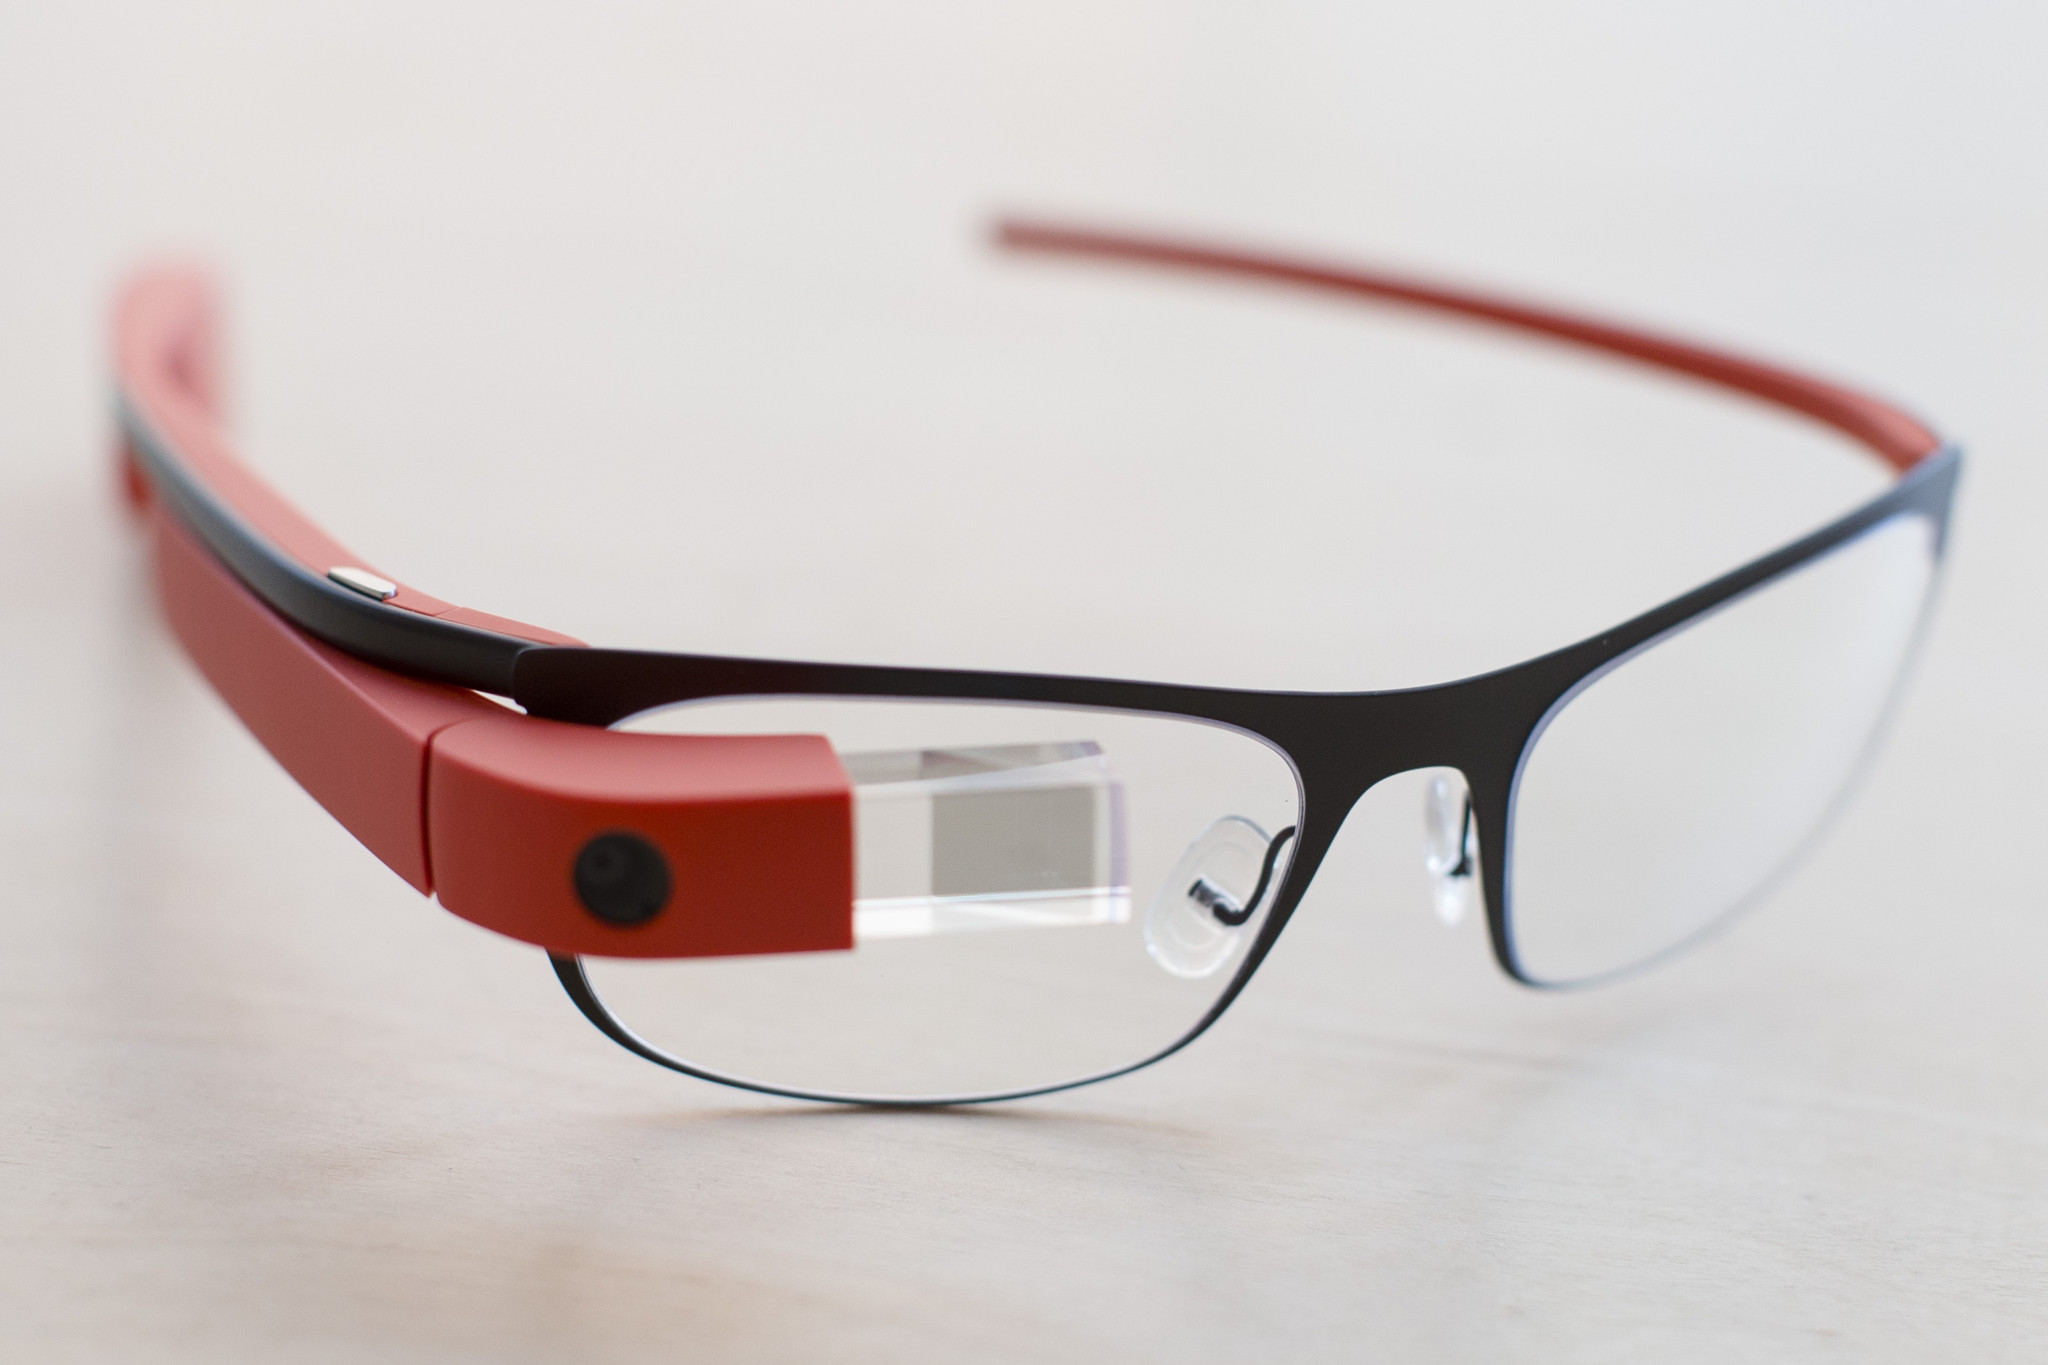 Nový design Google Glass?